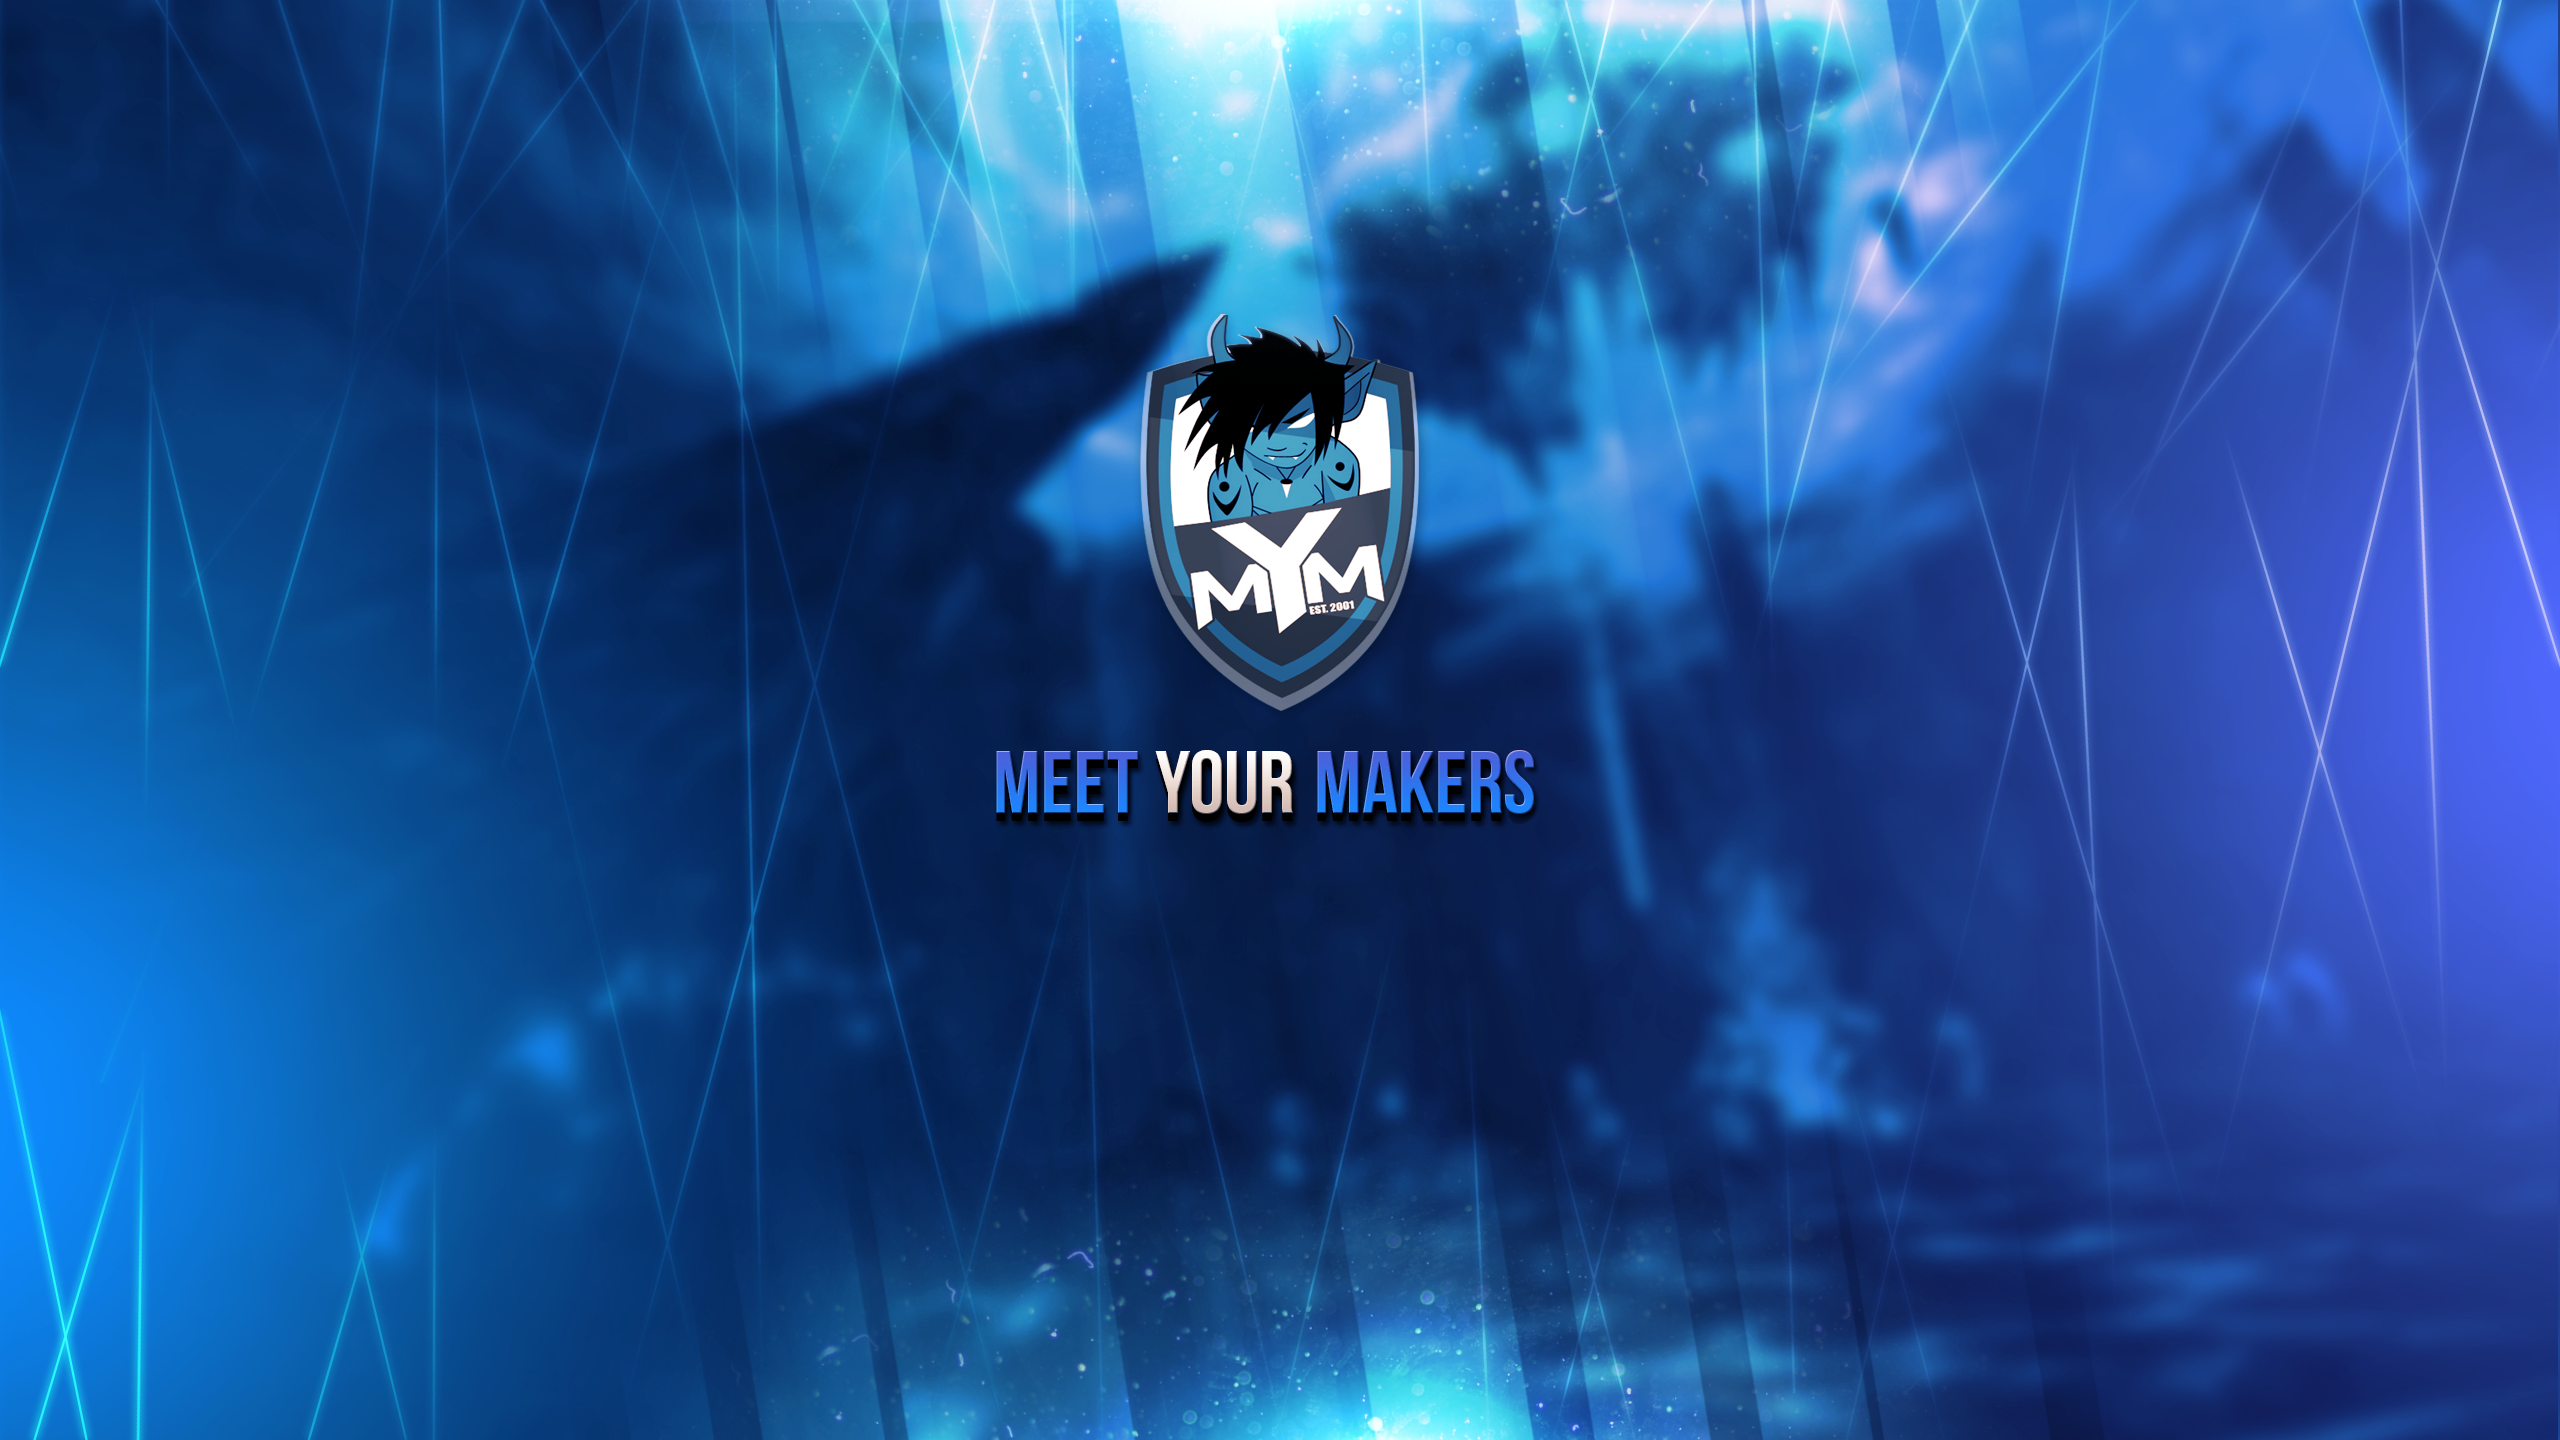 meet your makers twitter icon